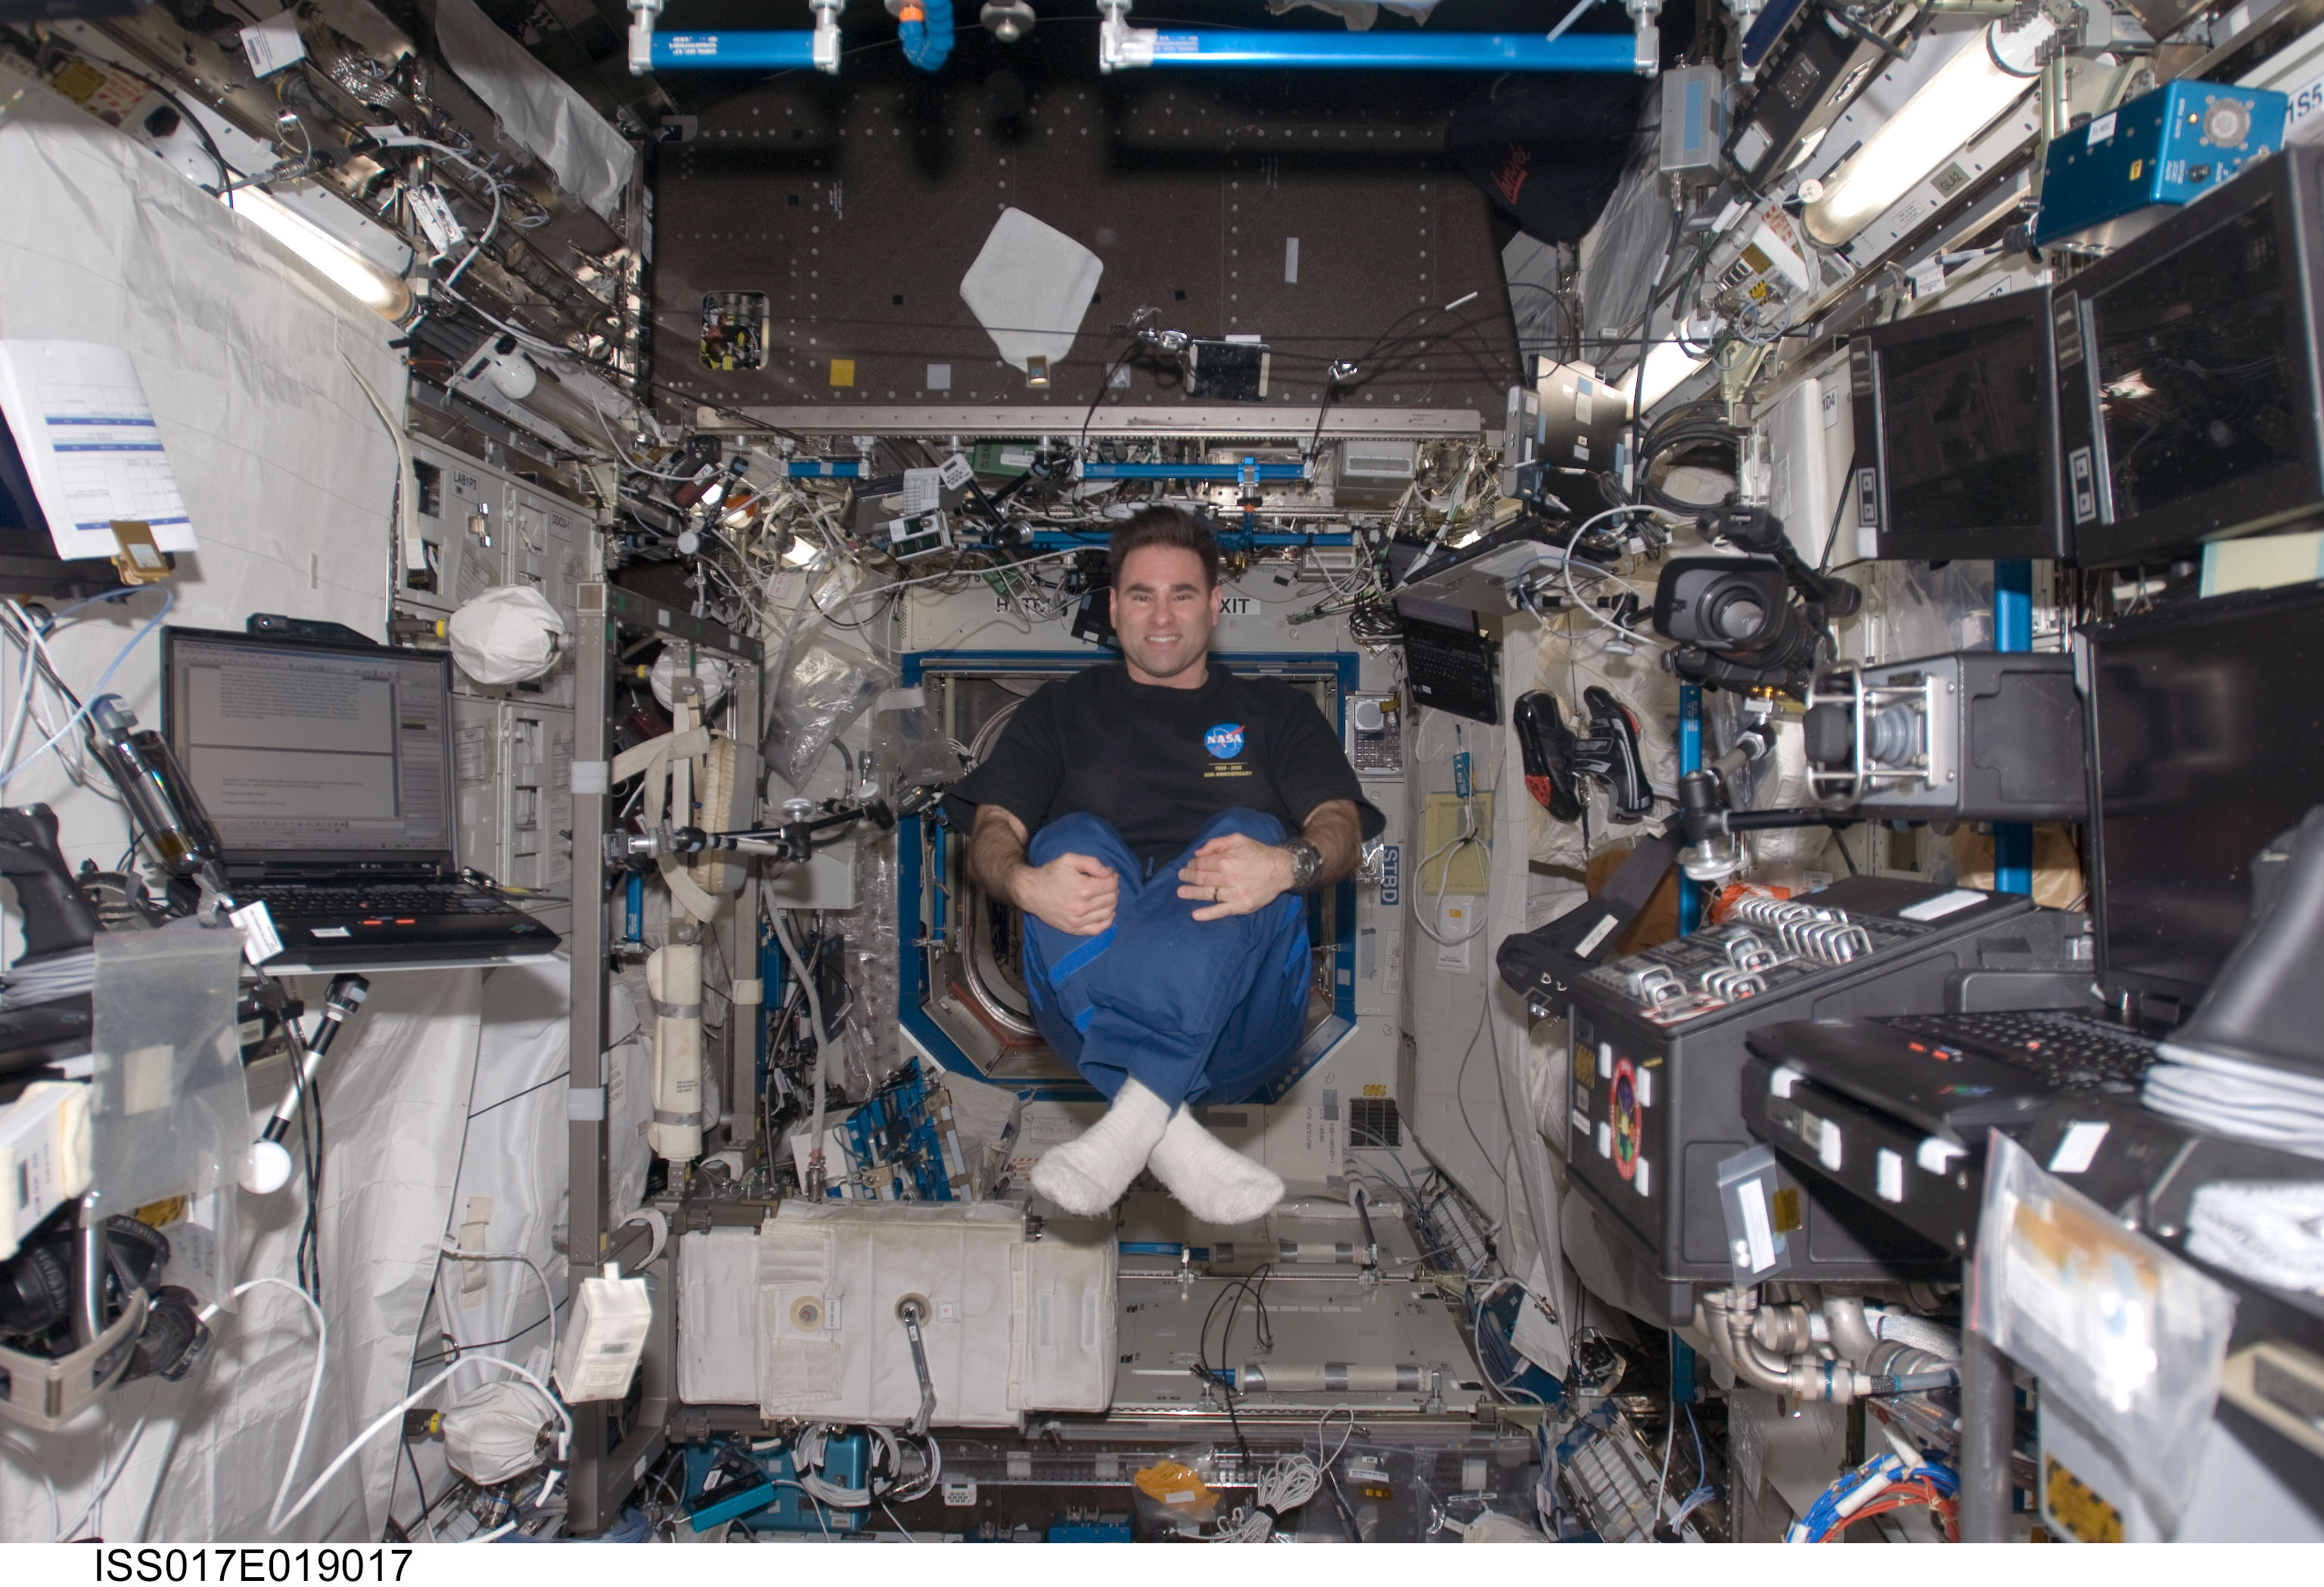 ISS Astronaut Floating Inside  Pics about space